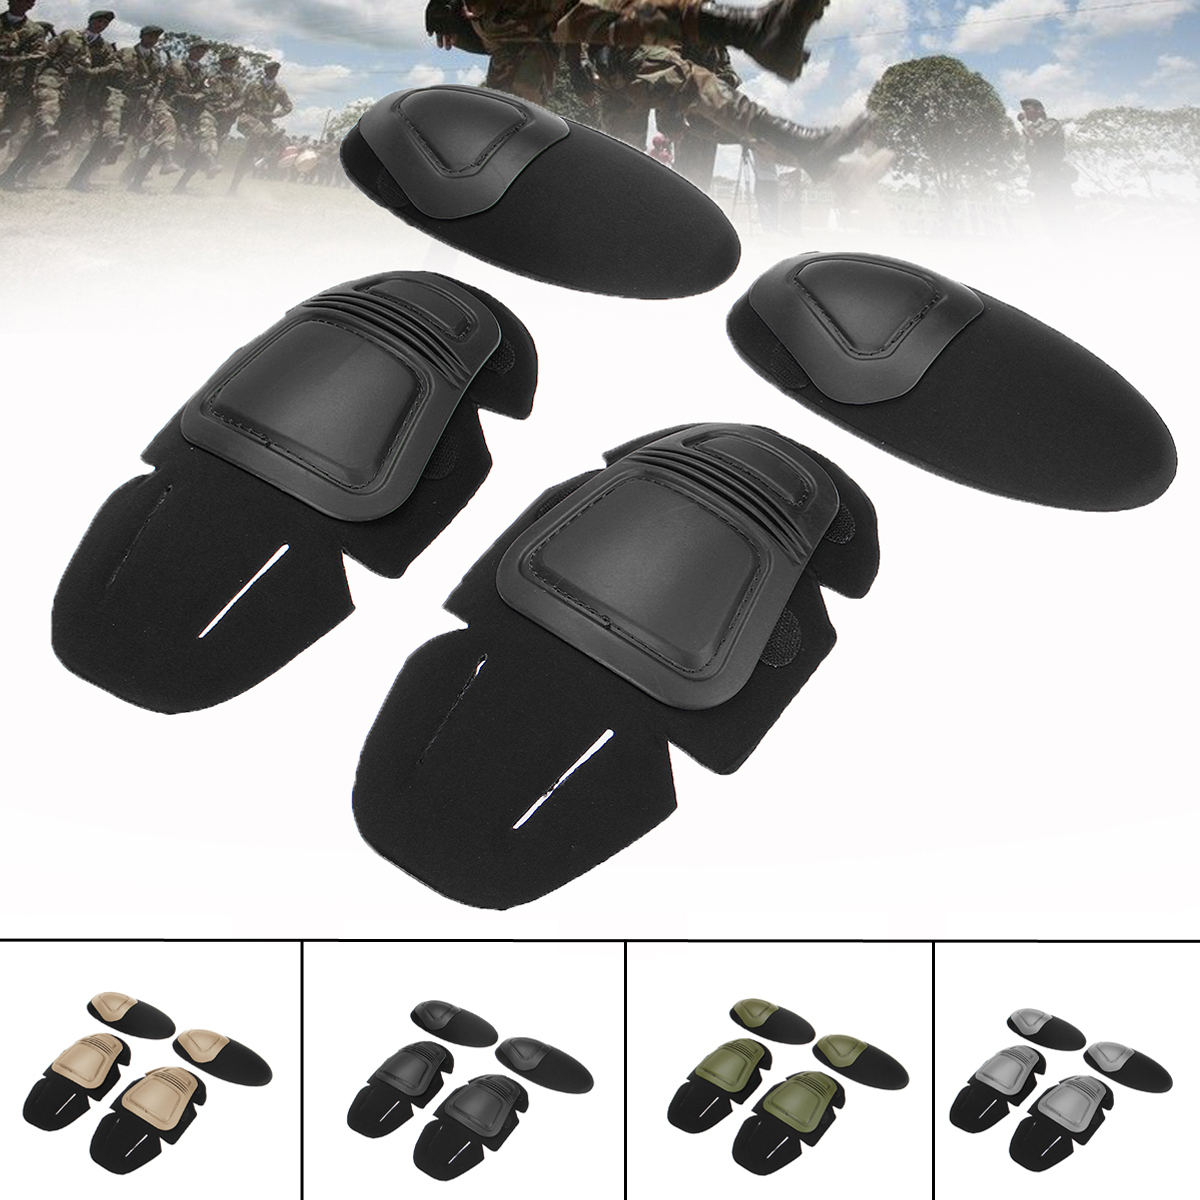 Military Tactical Knee and Elbow Protector Pad Combat Uniform Set Insert Protective Gear Knee Elbow Pads цены онлайн